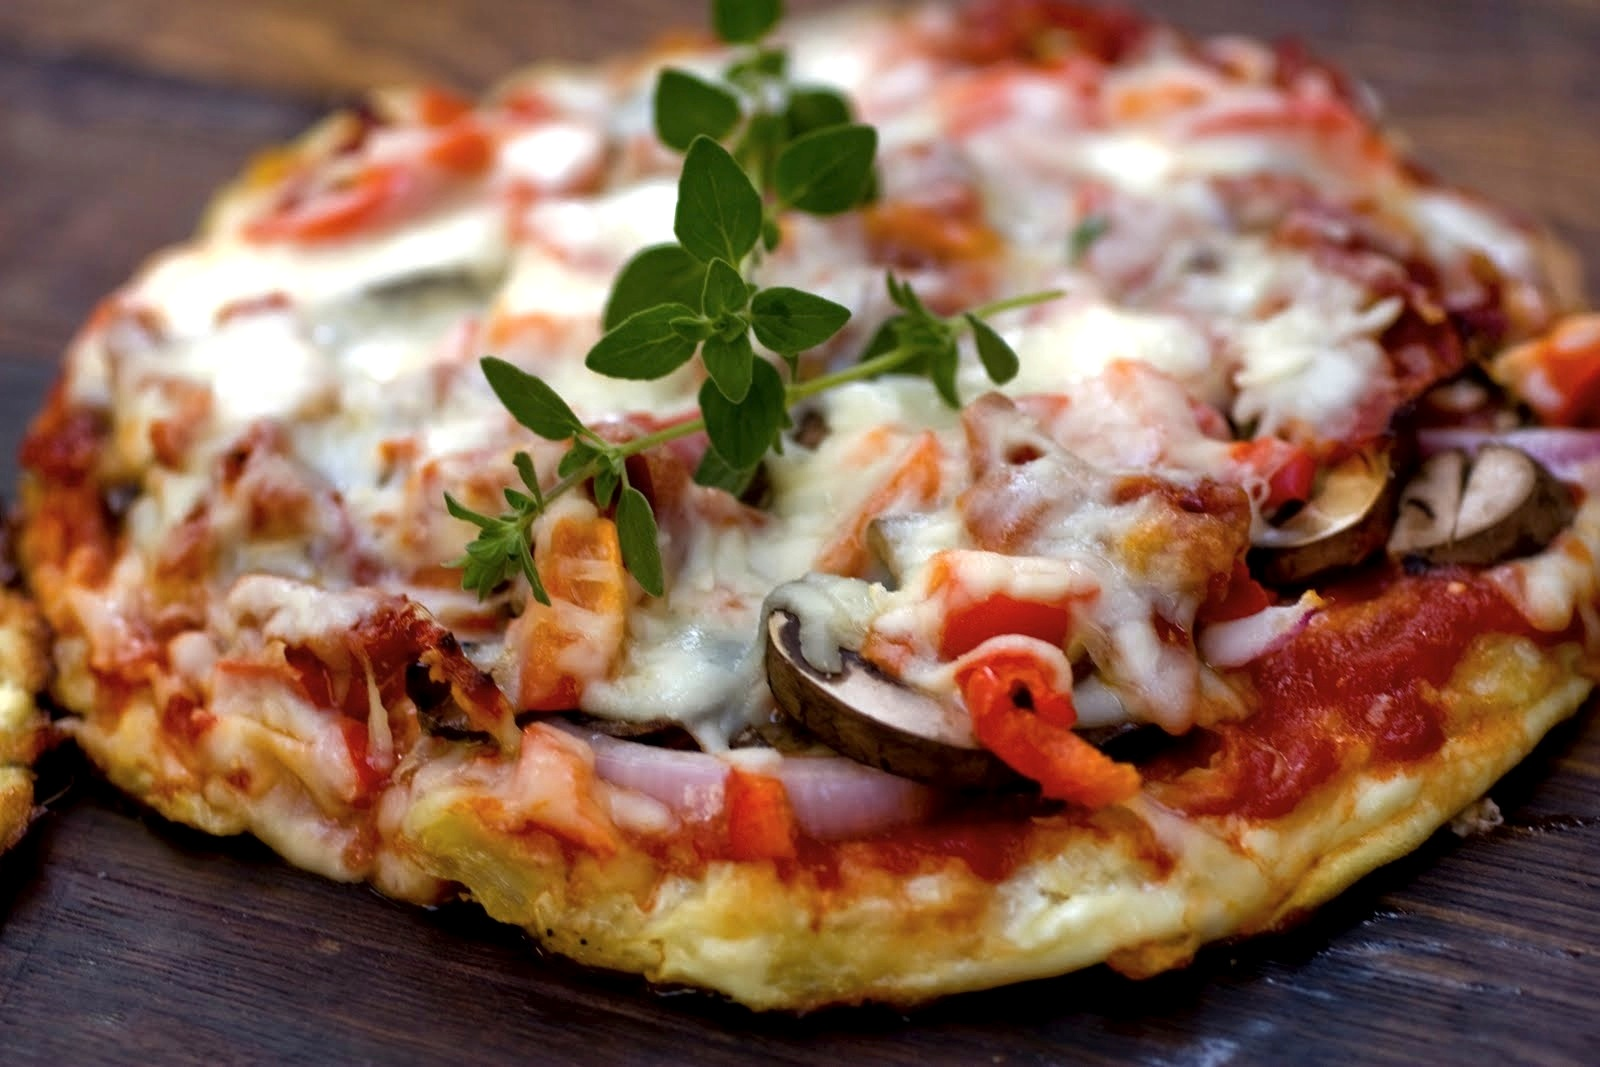 Gluten-Free Cauliflower Crust Pizza